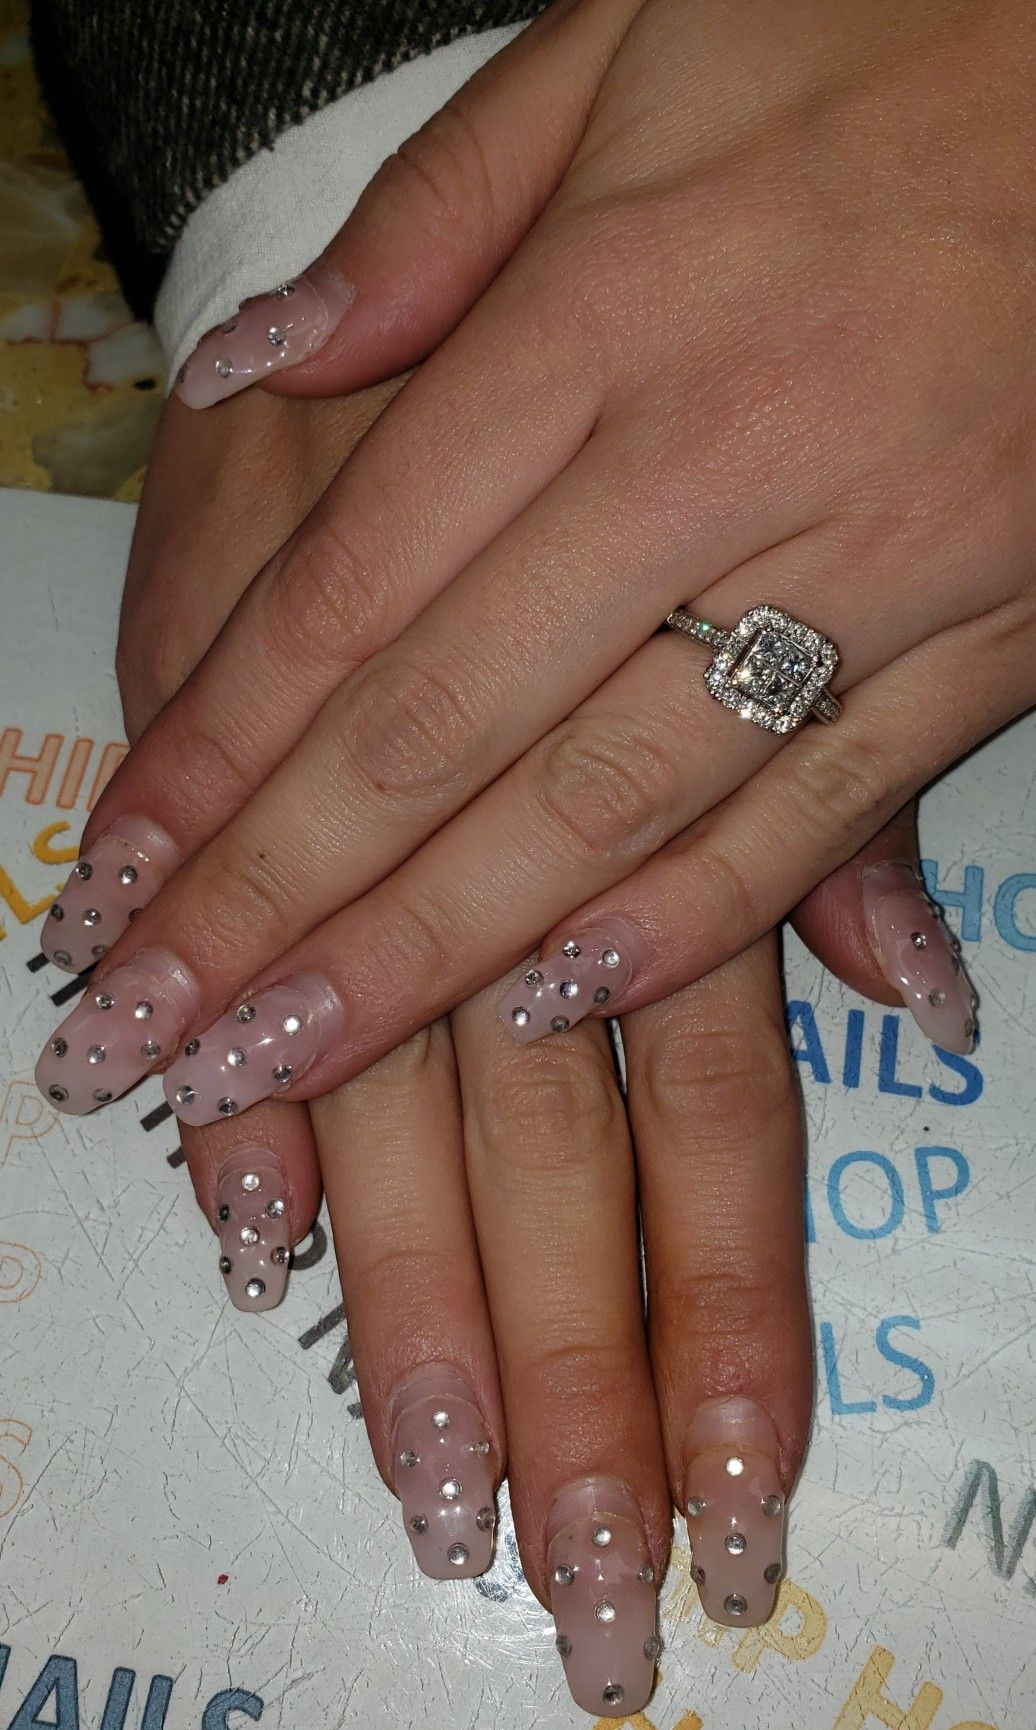 33 Nail Designs And Ideas For Coffin Acrylic Nails 5 Recipeess Com Nail Designs Summer Acrylic Summer Acrylic Nails Gorgeous Nails